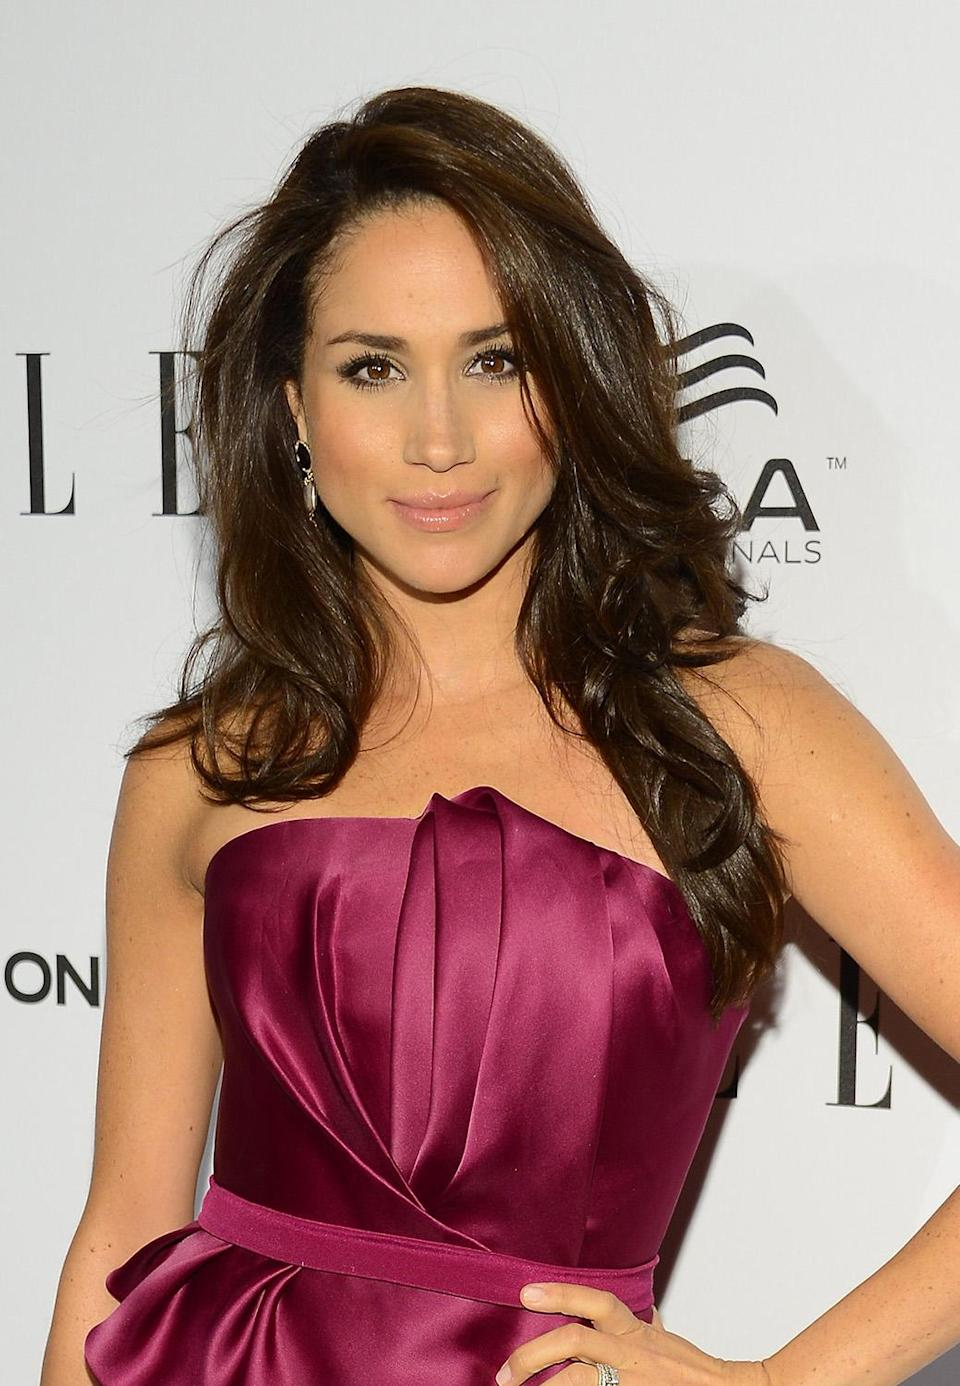 <p>At Elle's 2013 Women in Television Celebration, Markle struck a pose sporting a volumious blowout. (Photo: Michael Kovac/Getty Images for ELLE) </p>